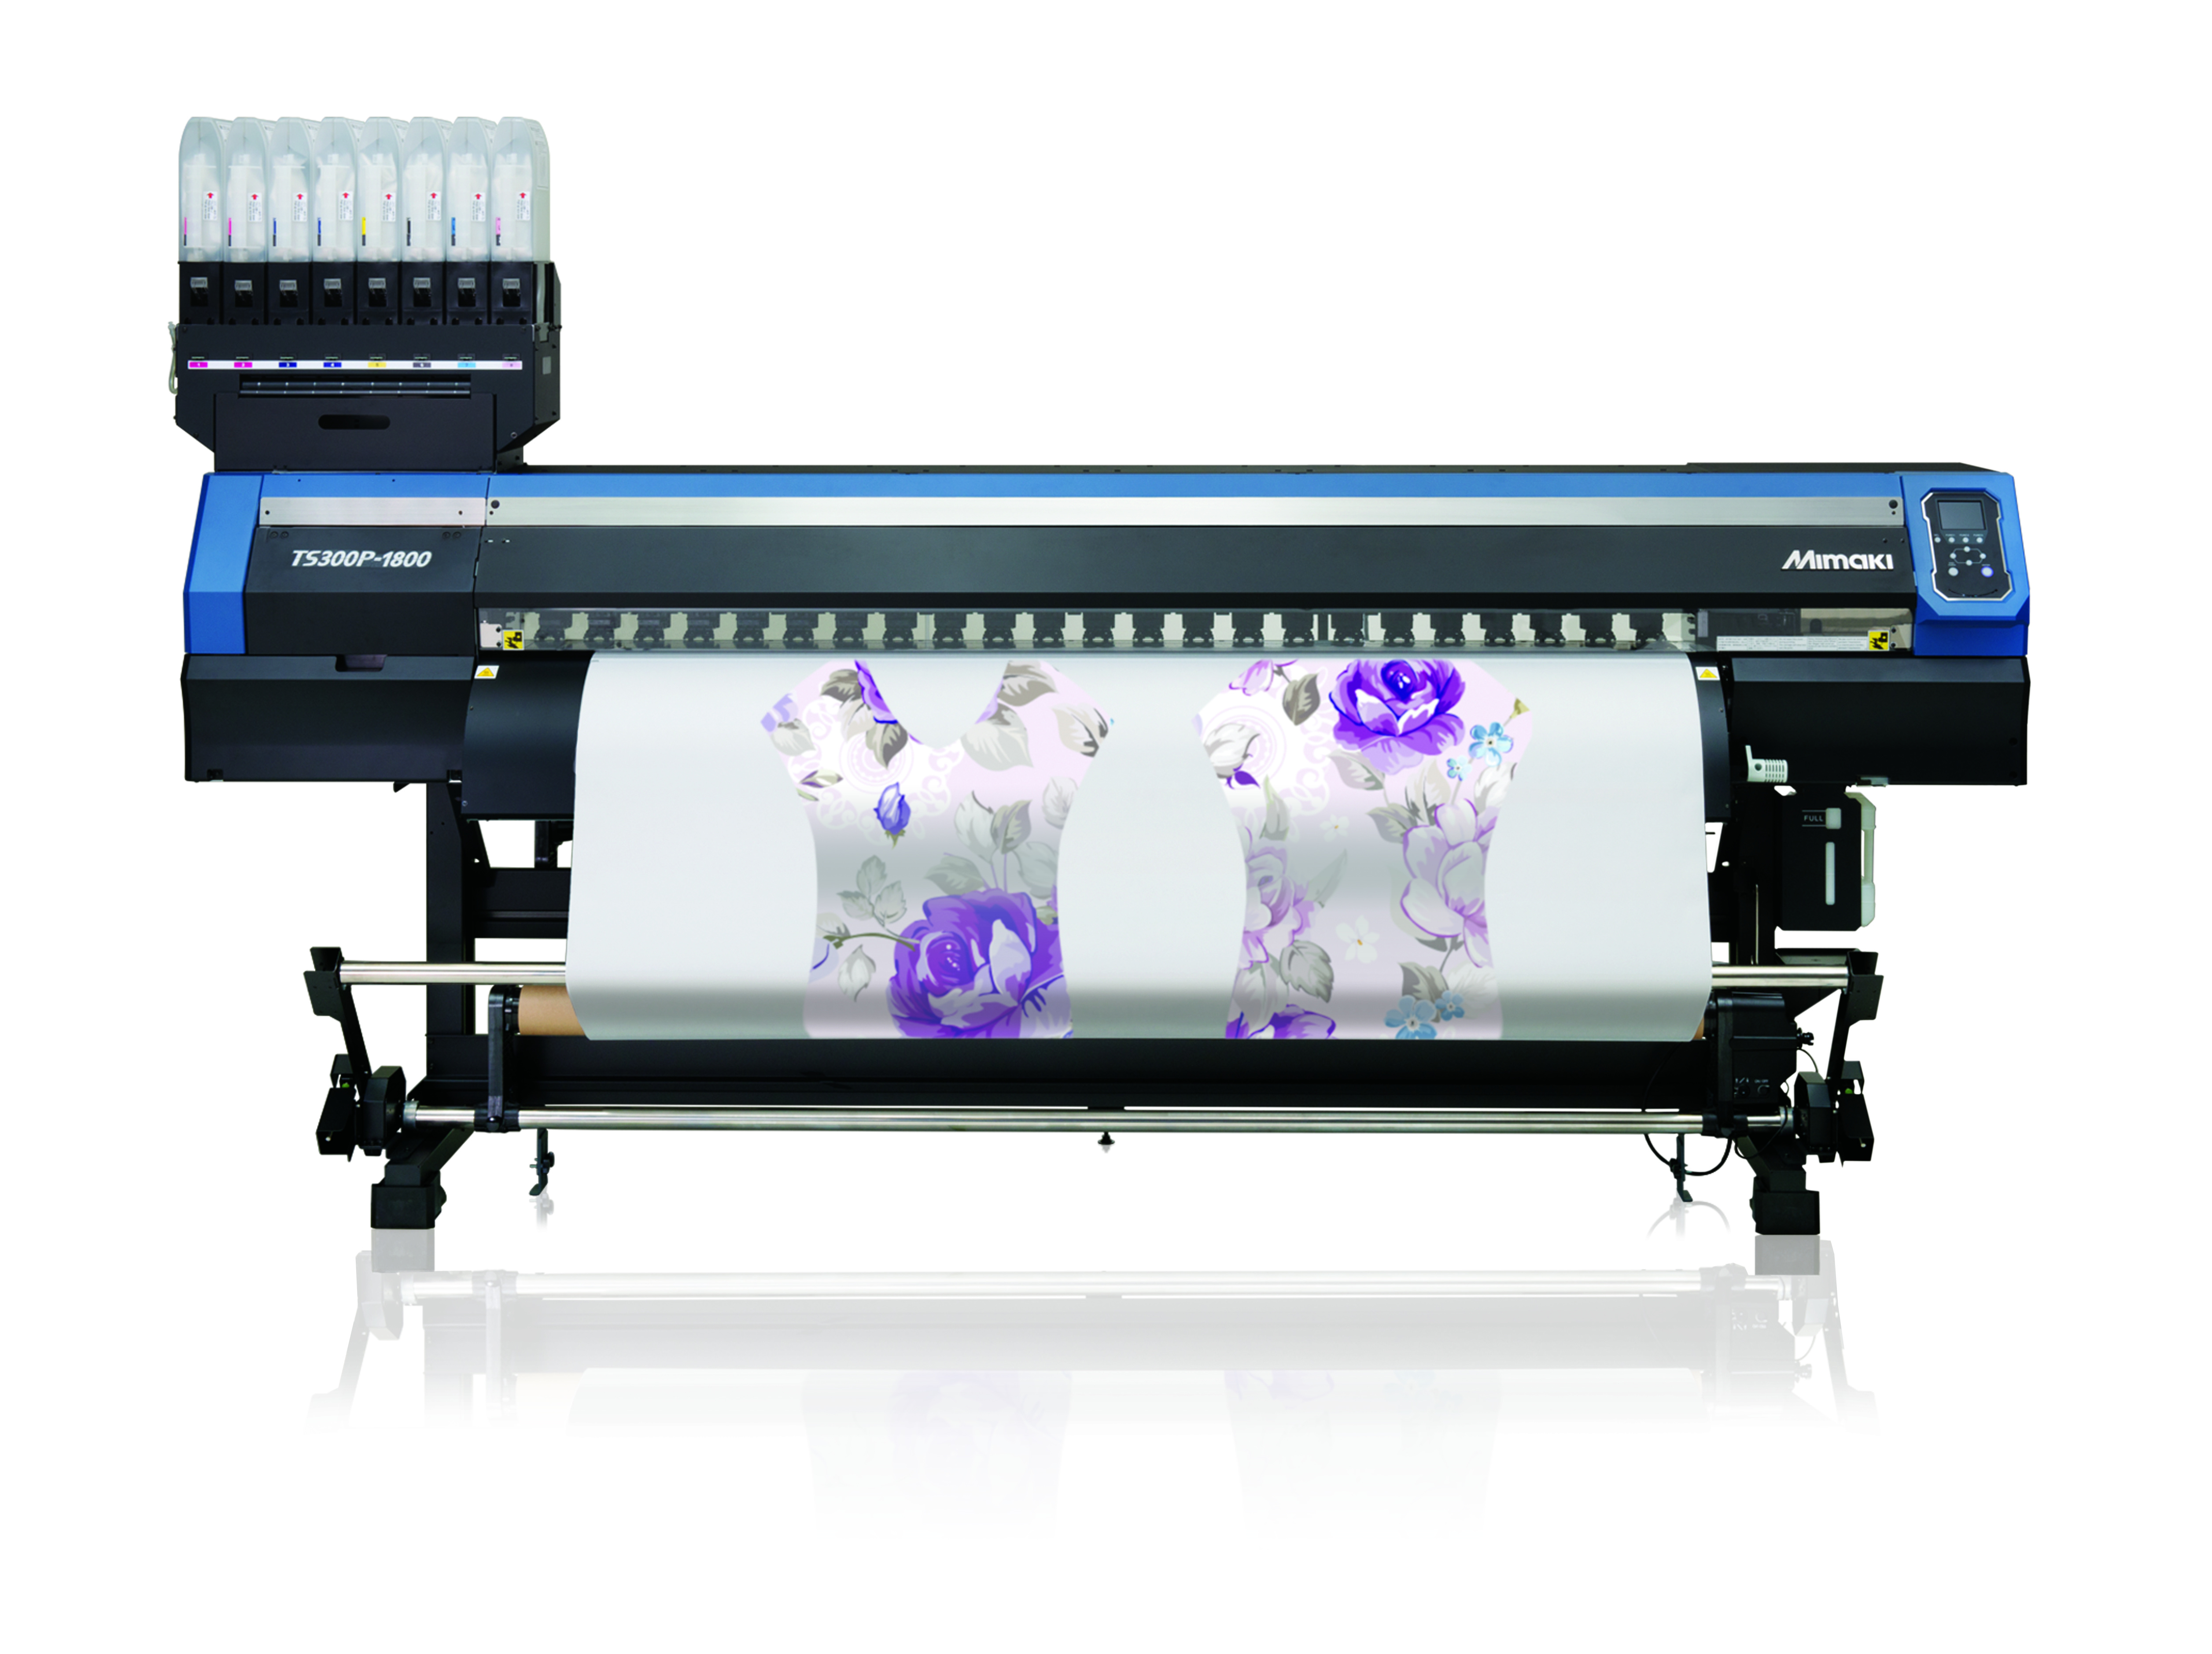 Hybrid supports textile companies with Mimaki TS300P price reduction